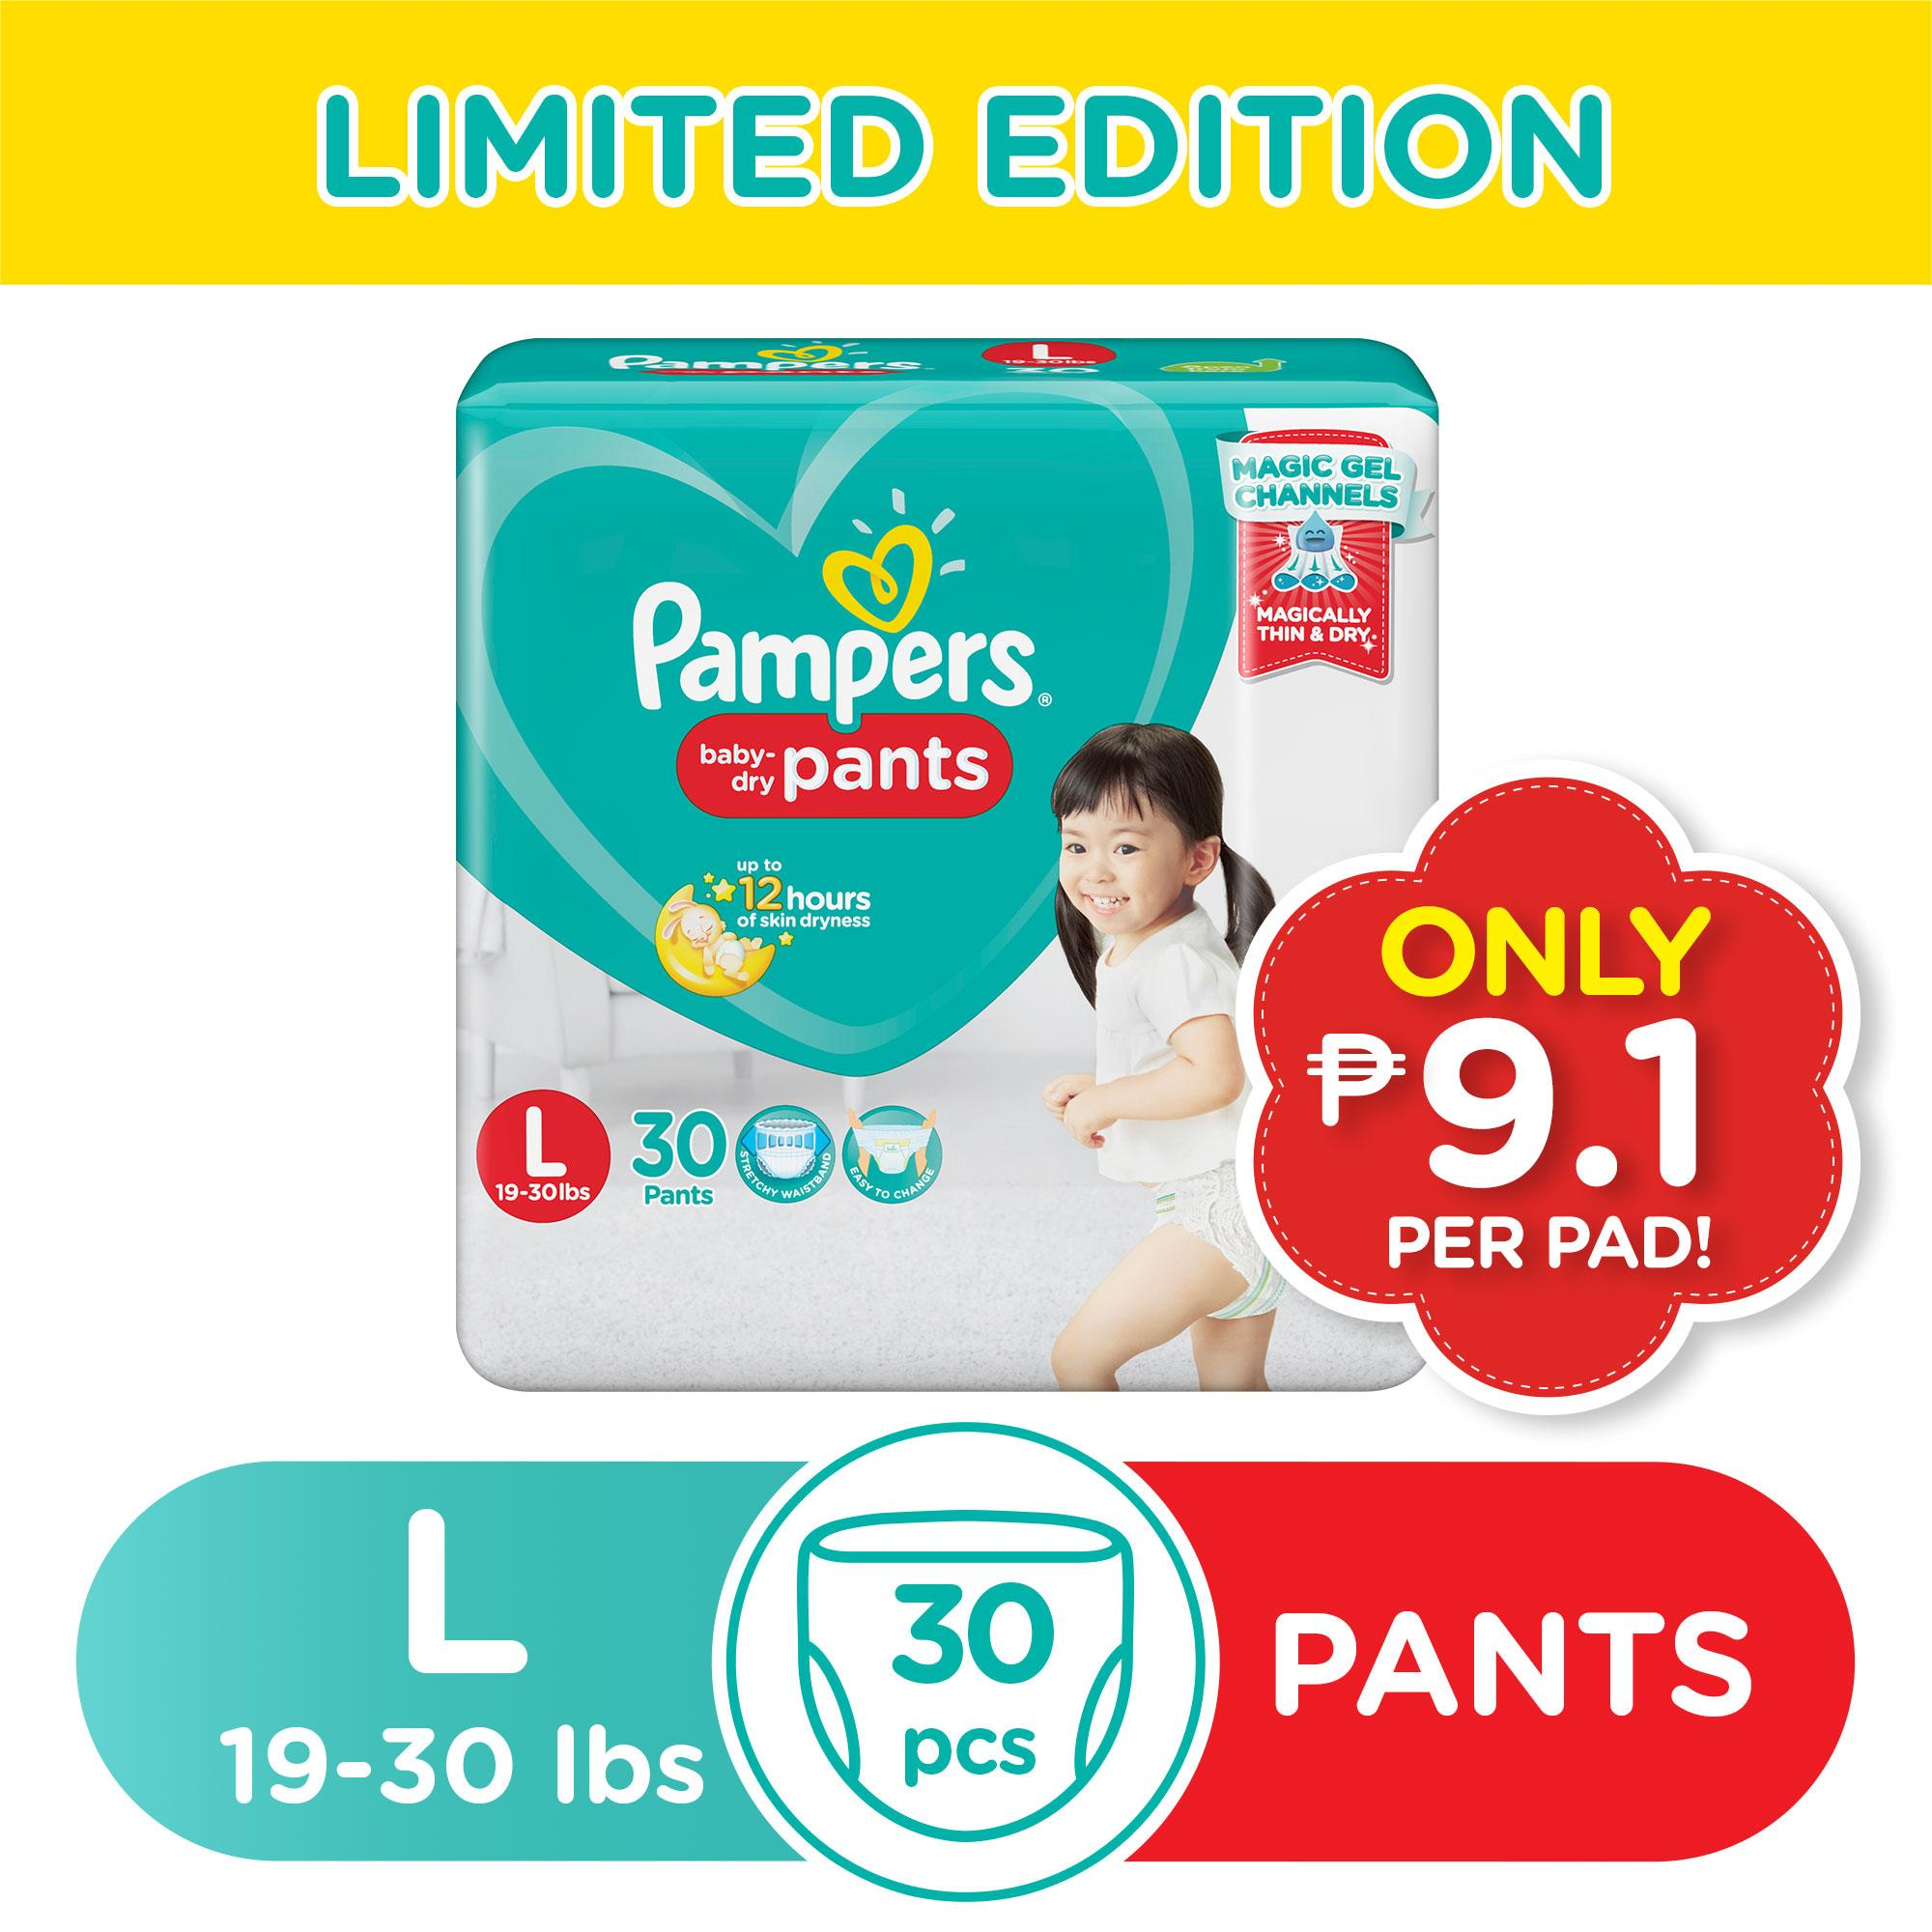 Pampers Baby Dry Large (19-30 lbs) - 30 pcs x 1 pack (30pcs) - Diaper Pants